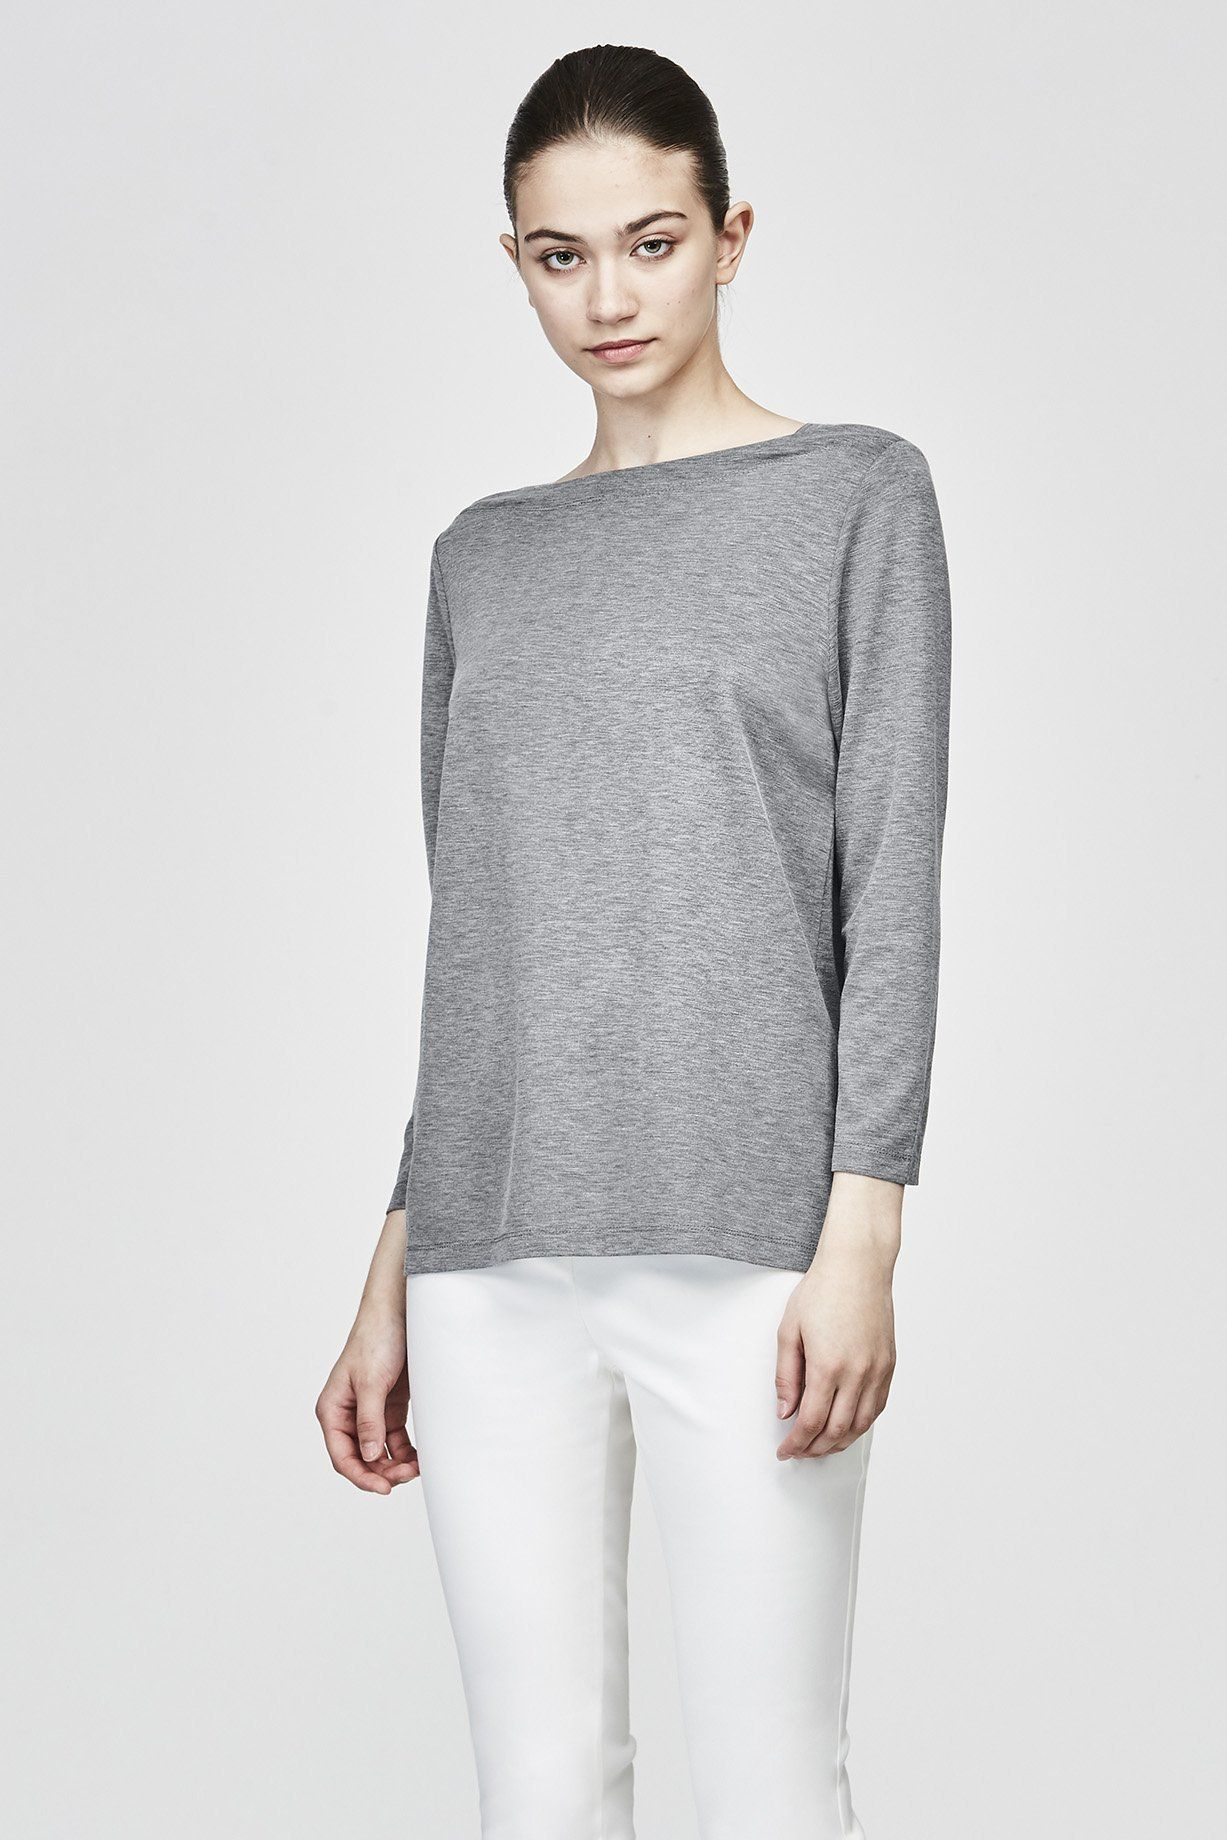 Iora long sleeves blouse in i want one pinterest